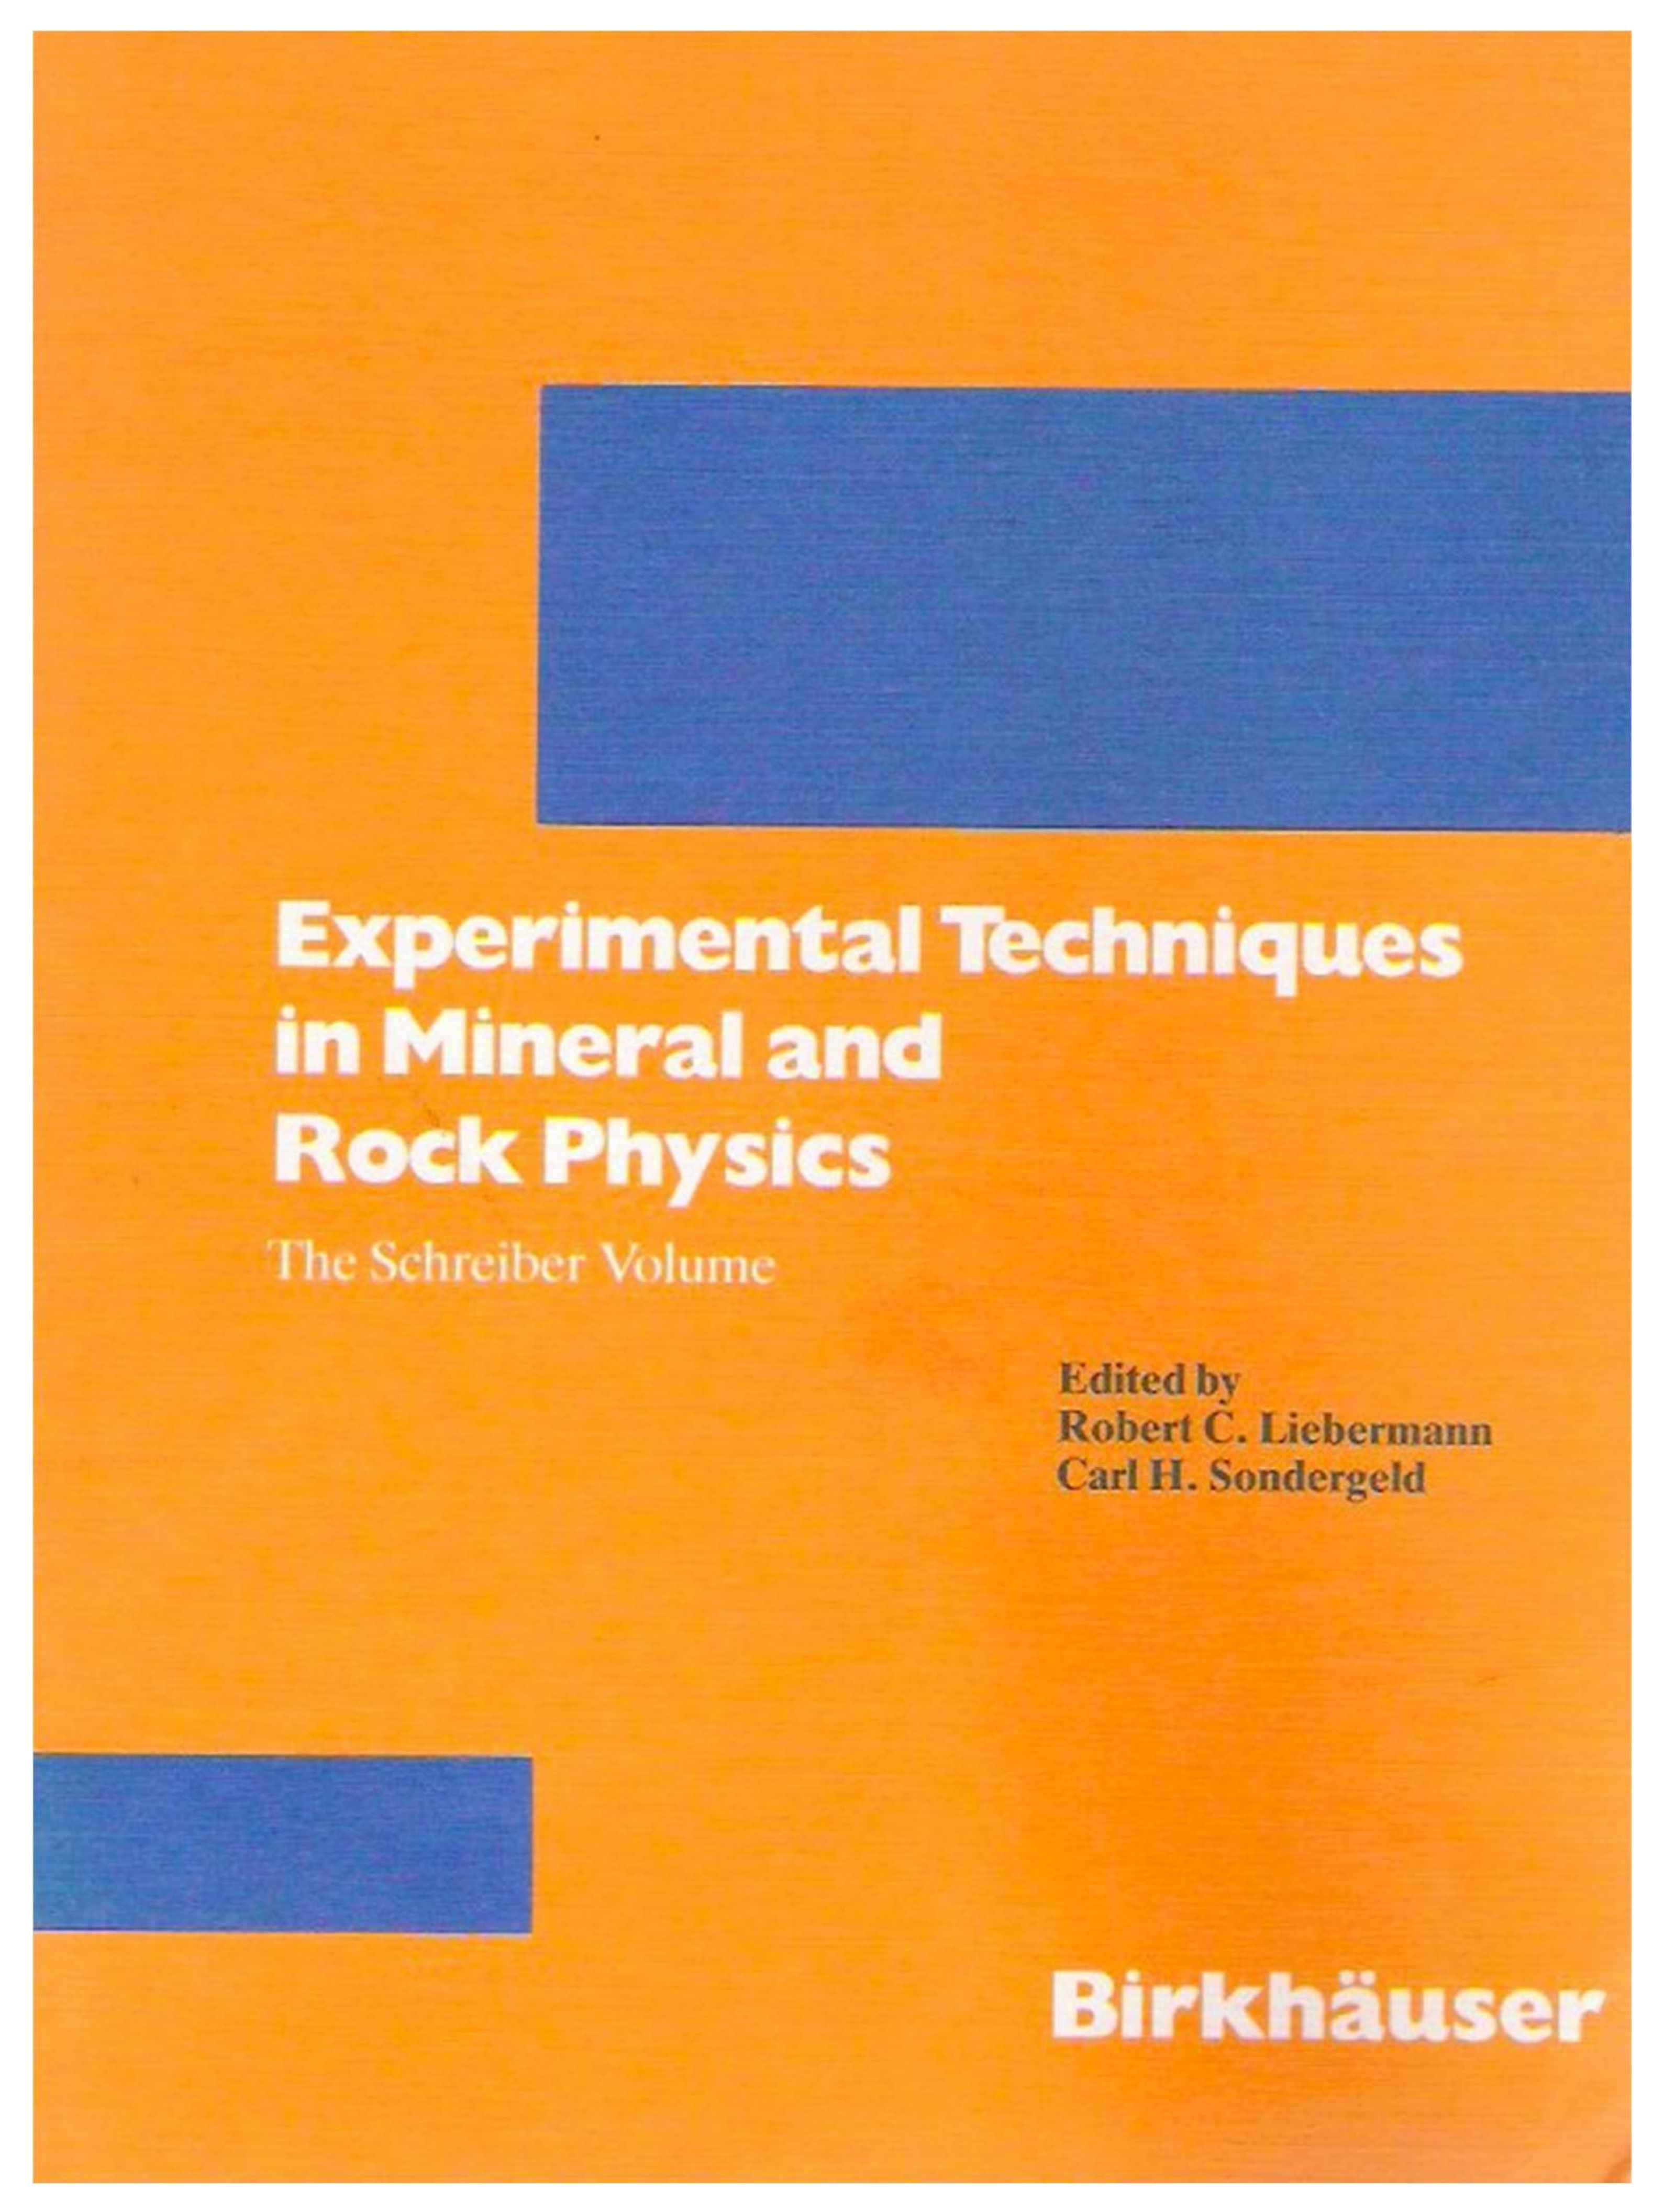 Minerals | Free Full-Text | The Orson Anderson Era of Mineral